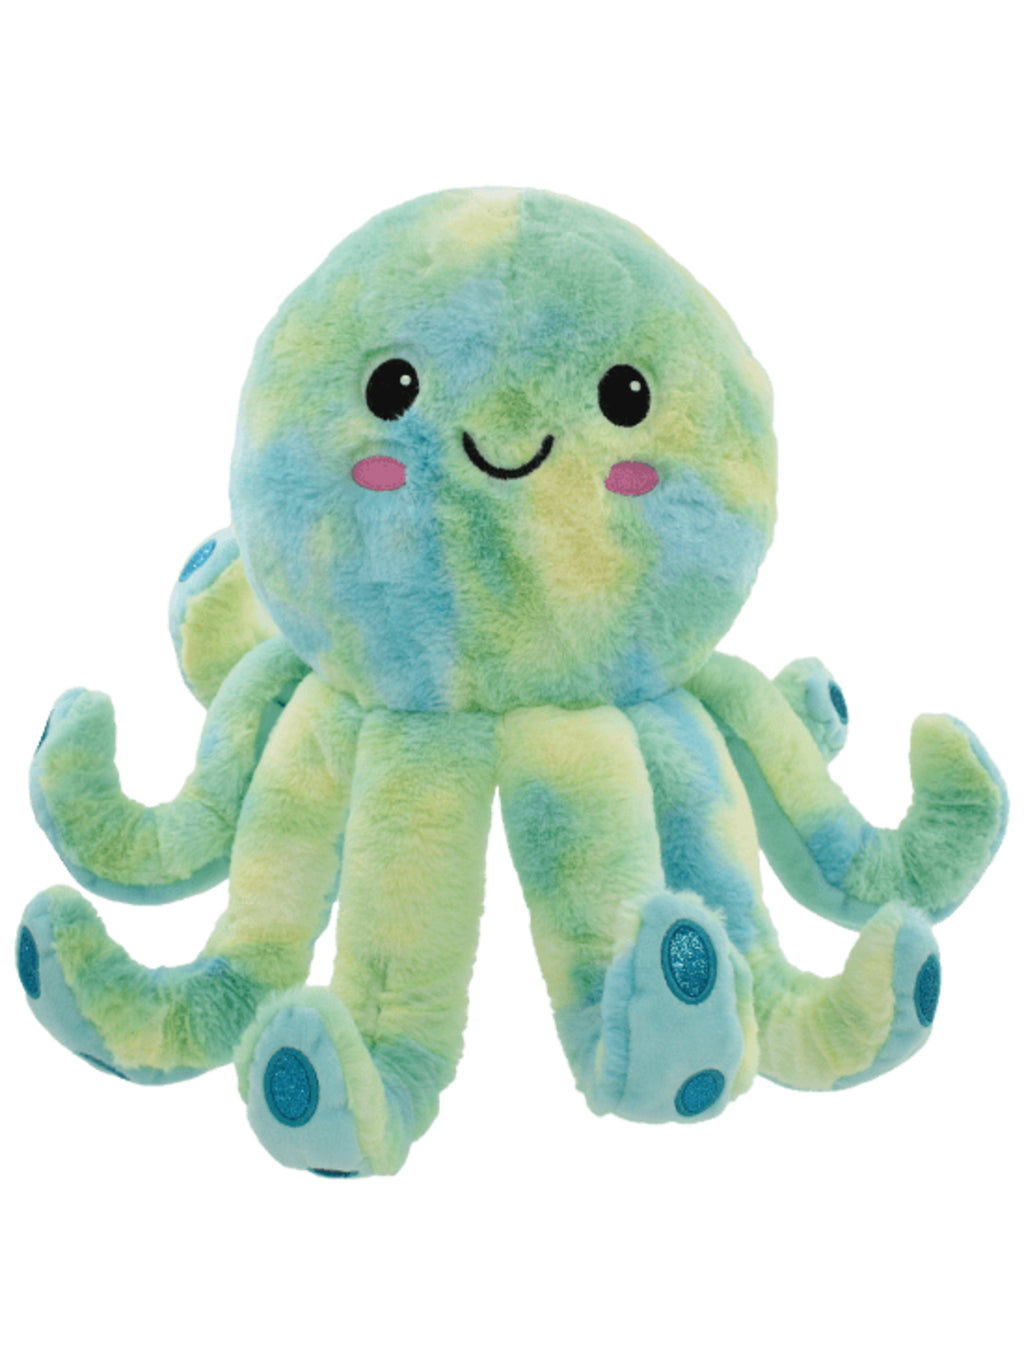 Octopus Furry Stuffed Animal Pillow